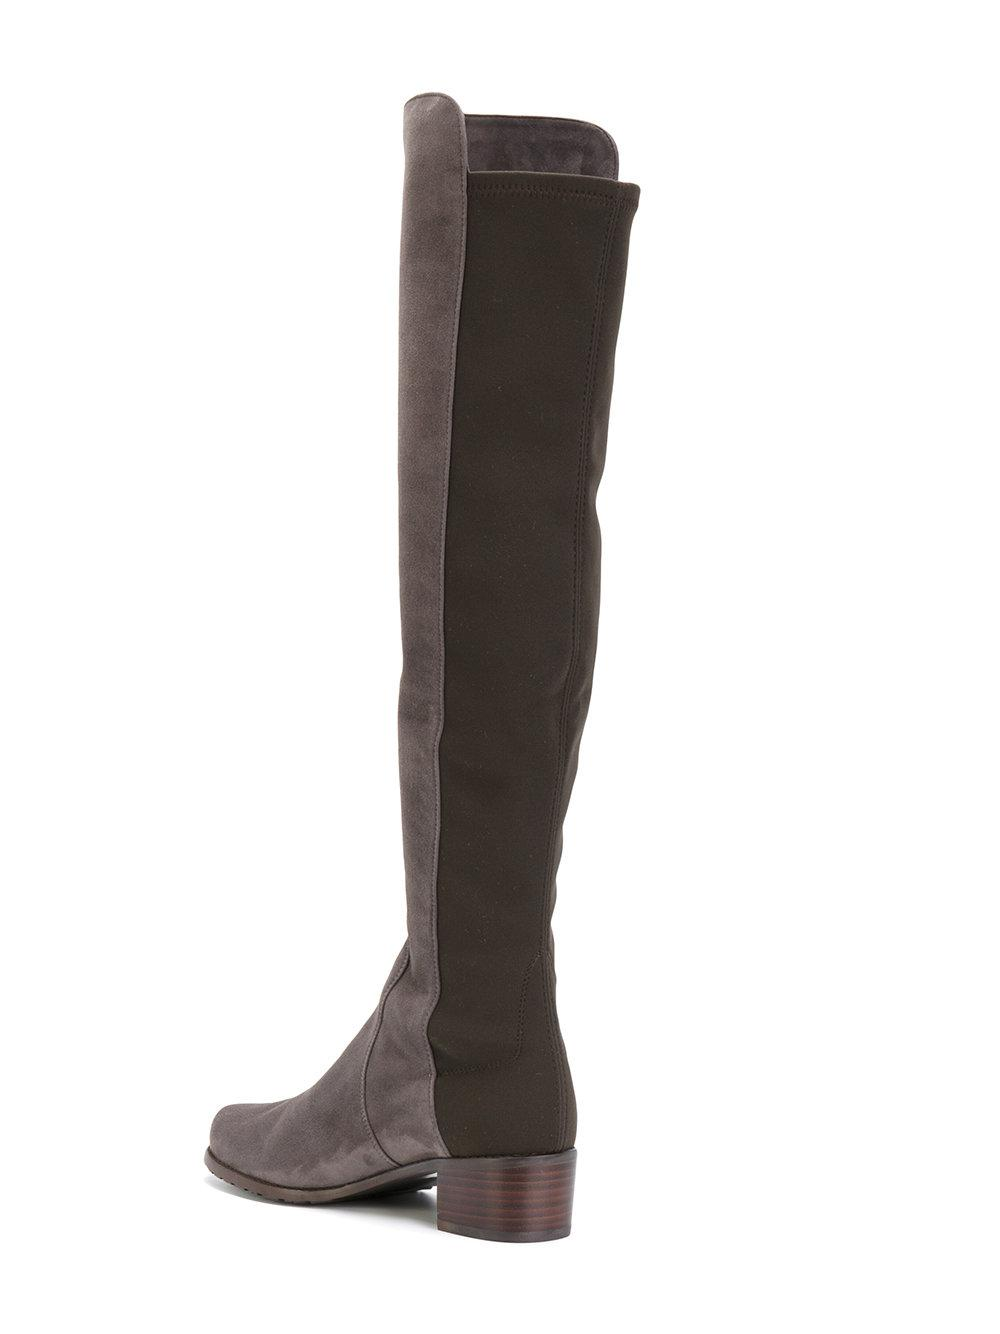 5751c1ae5bad Lyst - Stuart Weitzman Reserve Knee High Boots in Gray